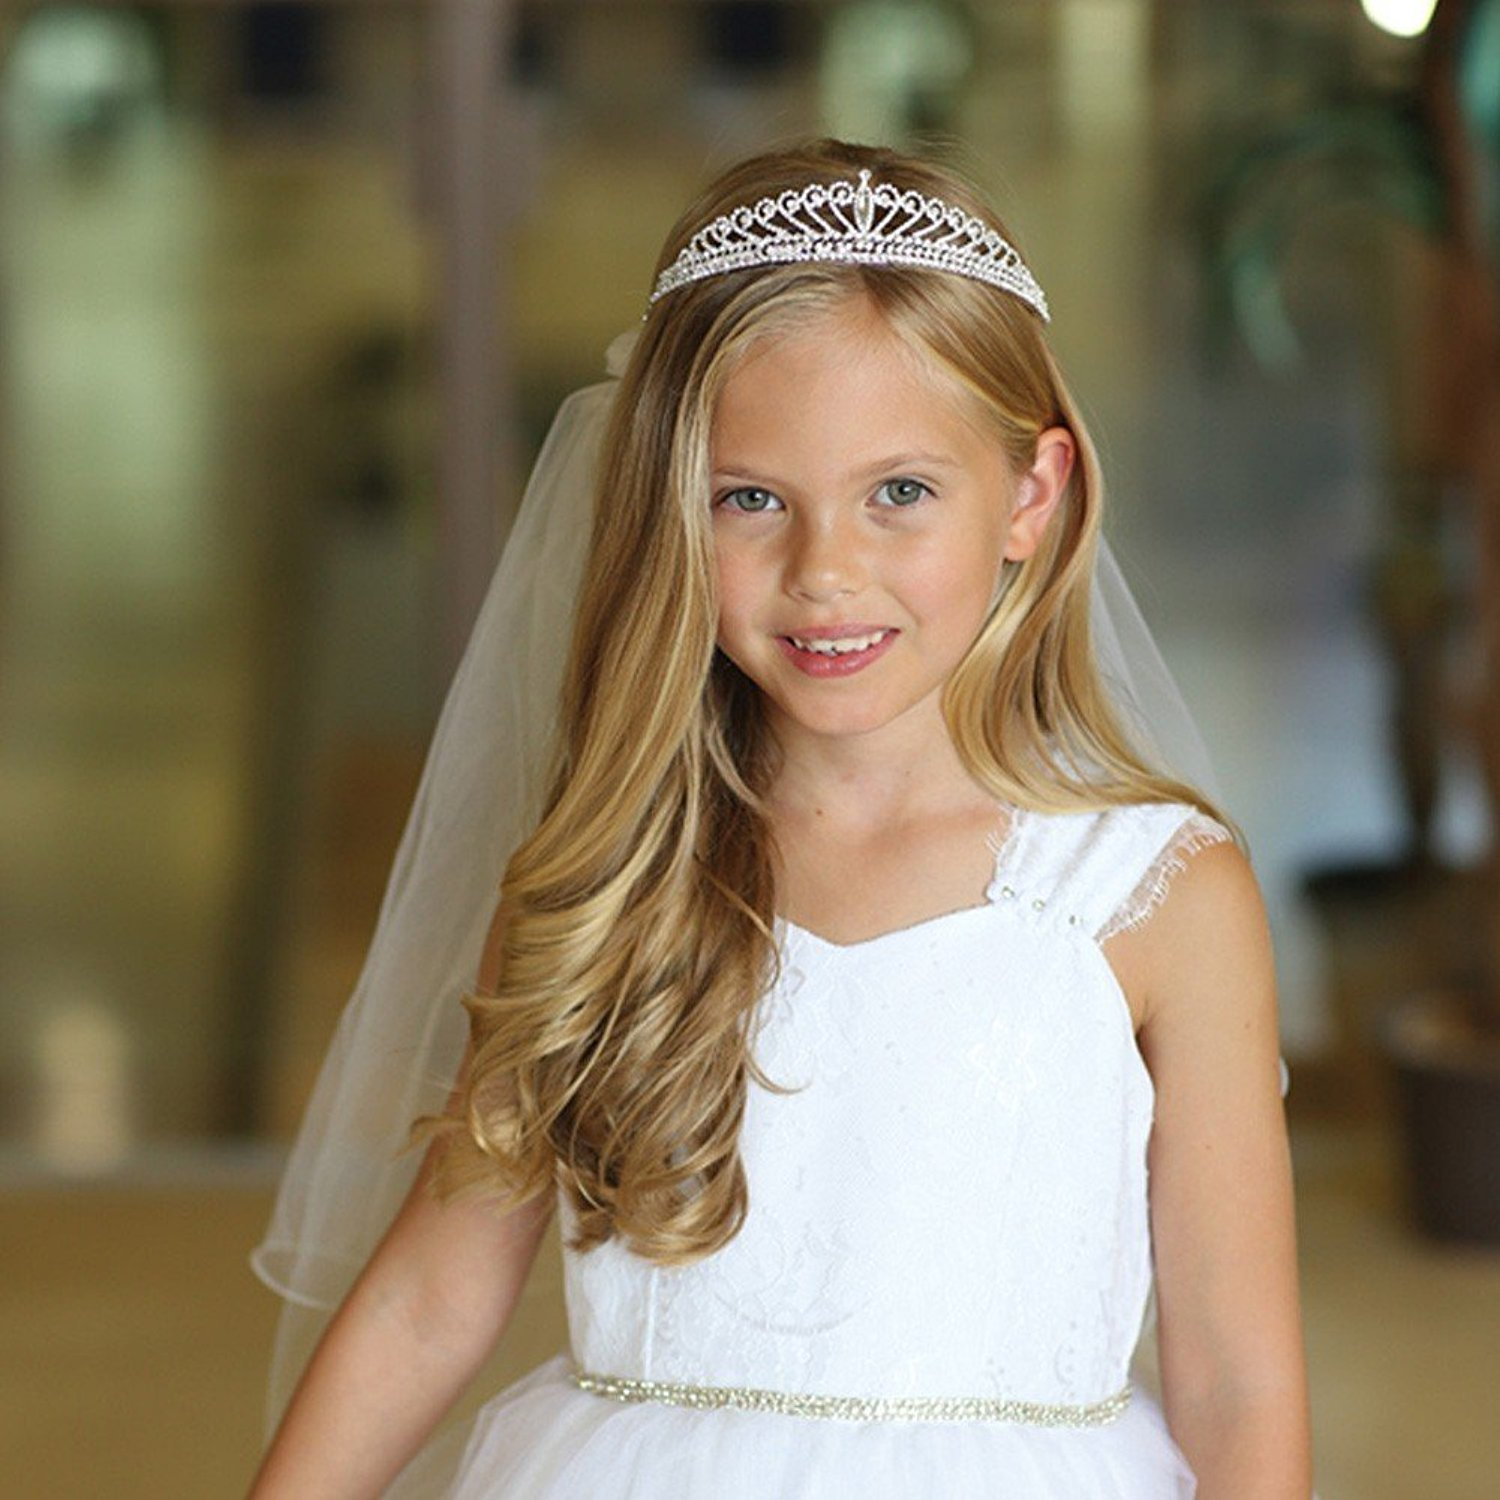 Angels Garment Girls White Pencil Edge Communion Flower Girl Tiara Veil